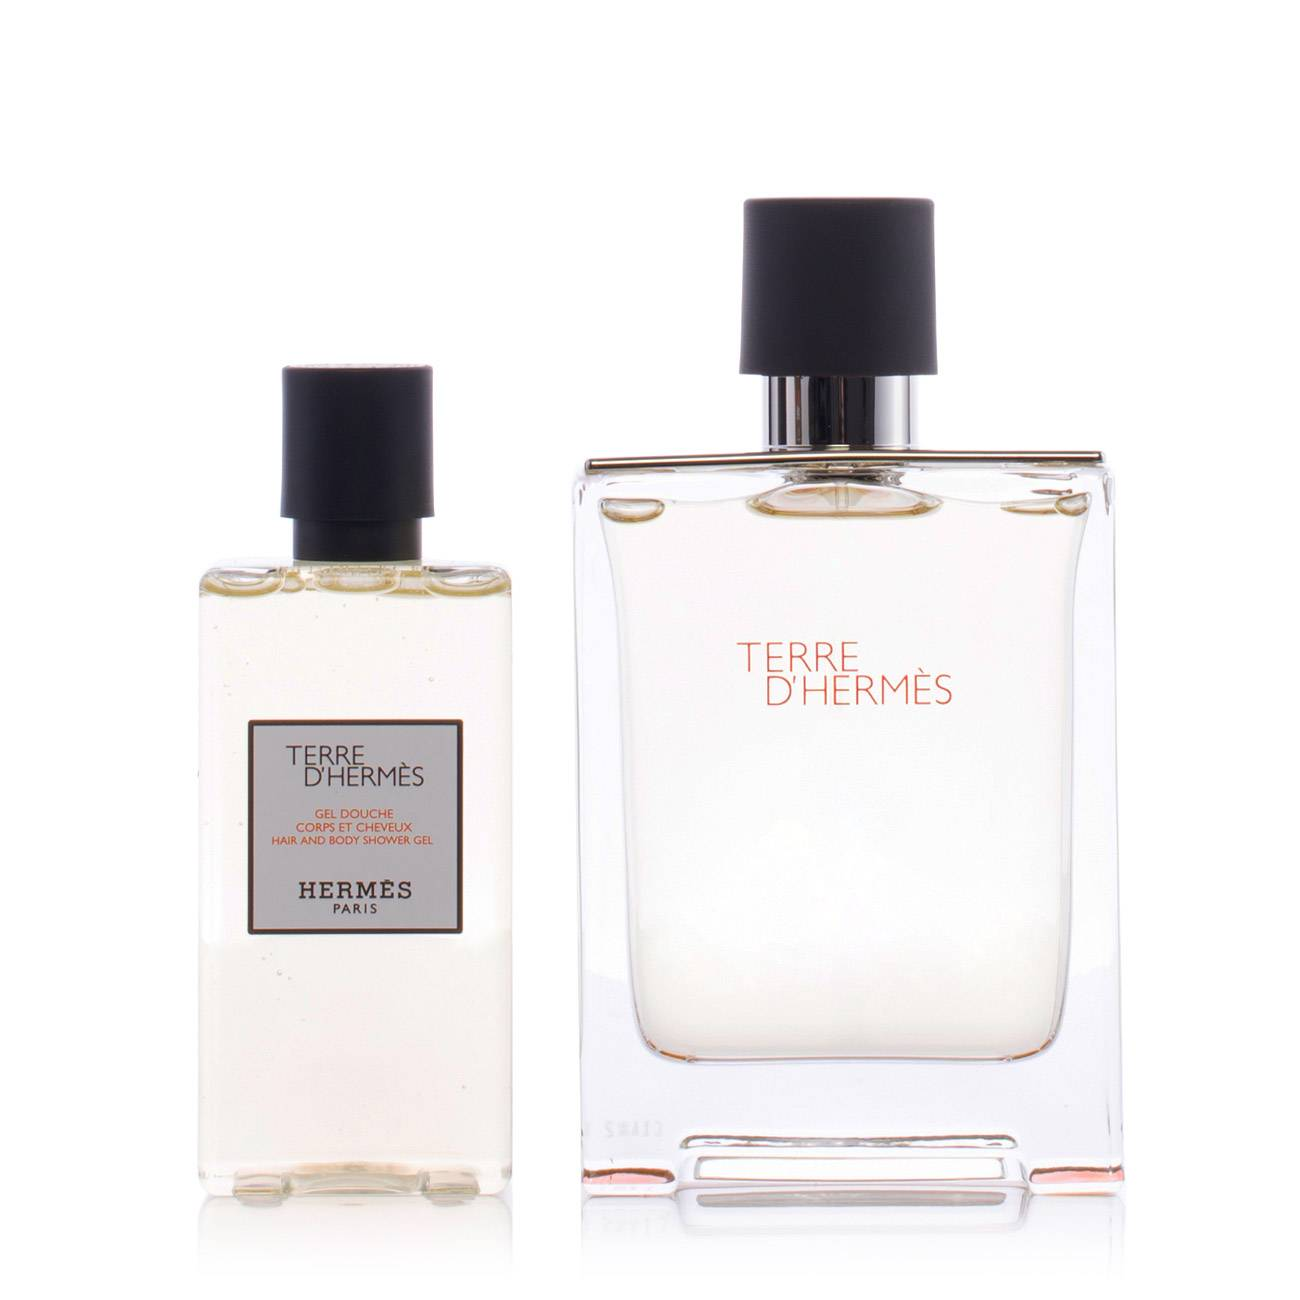 Terre D'hermes Set 180ml Hermes imagine 2021 bestvalue.eu